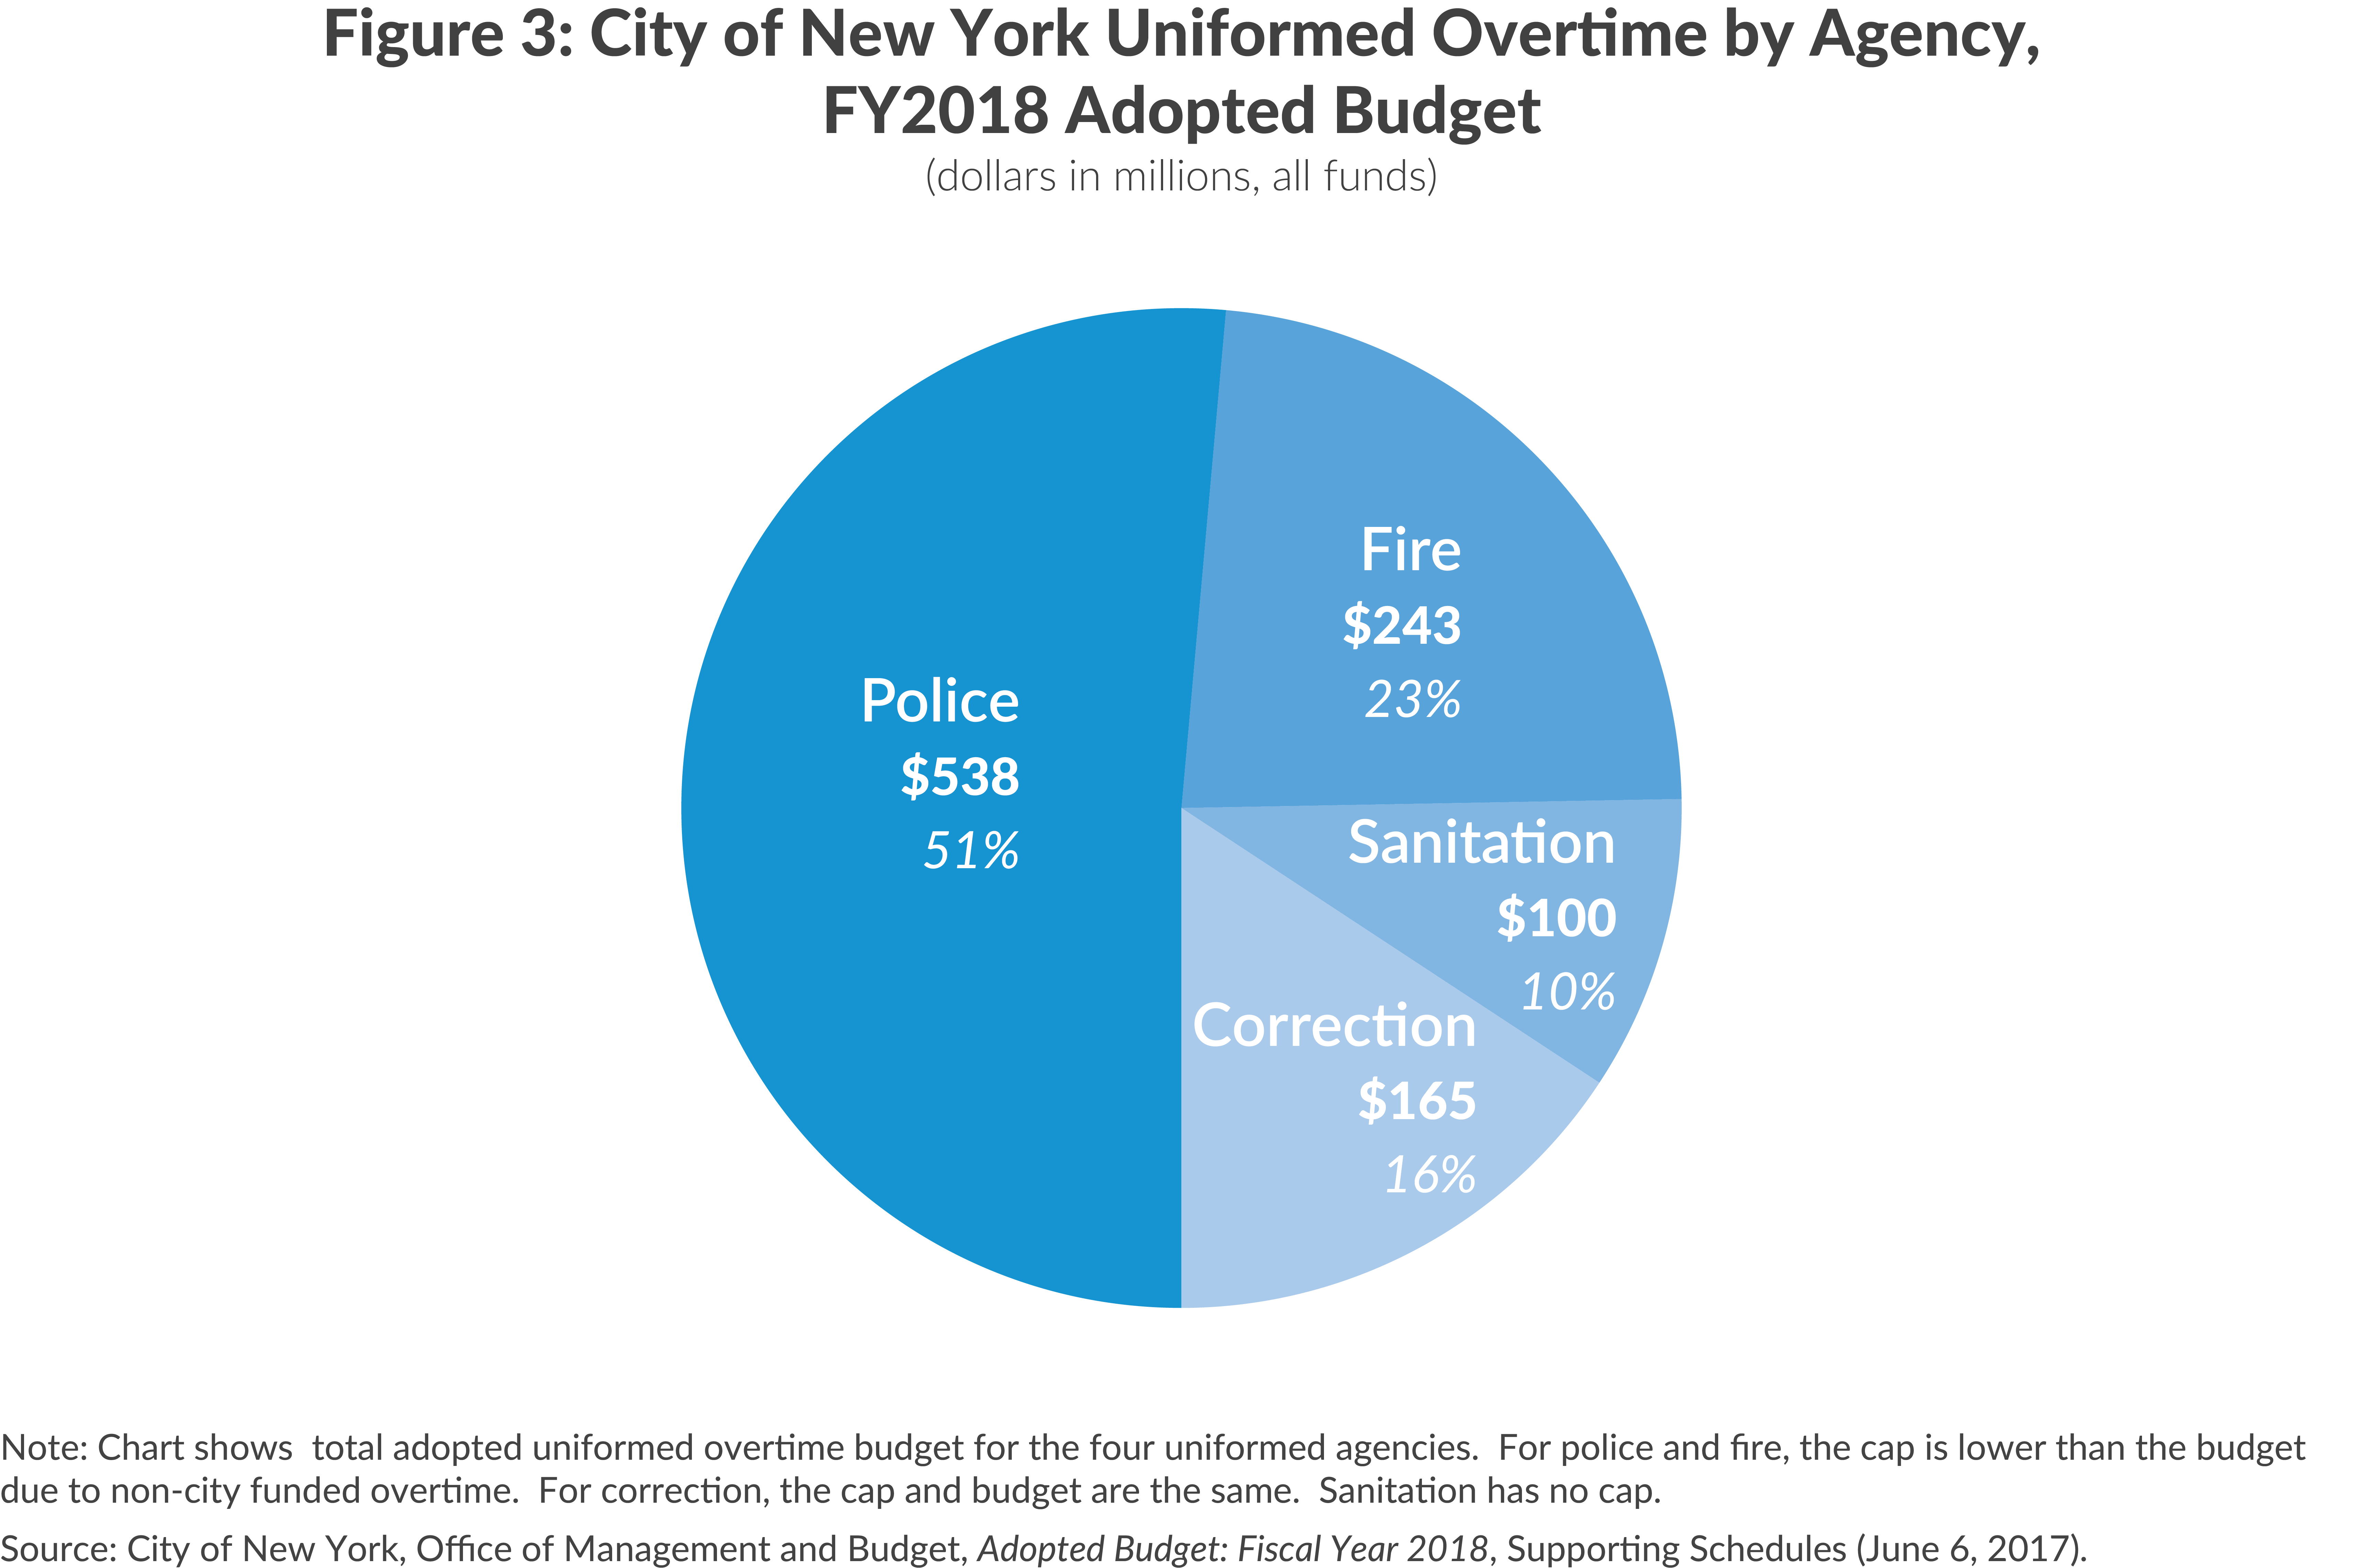 NYC Uniformed Overtime Expenditures by Agency, FY2018